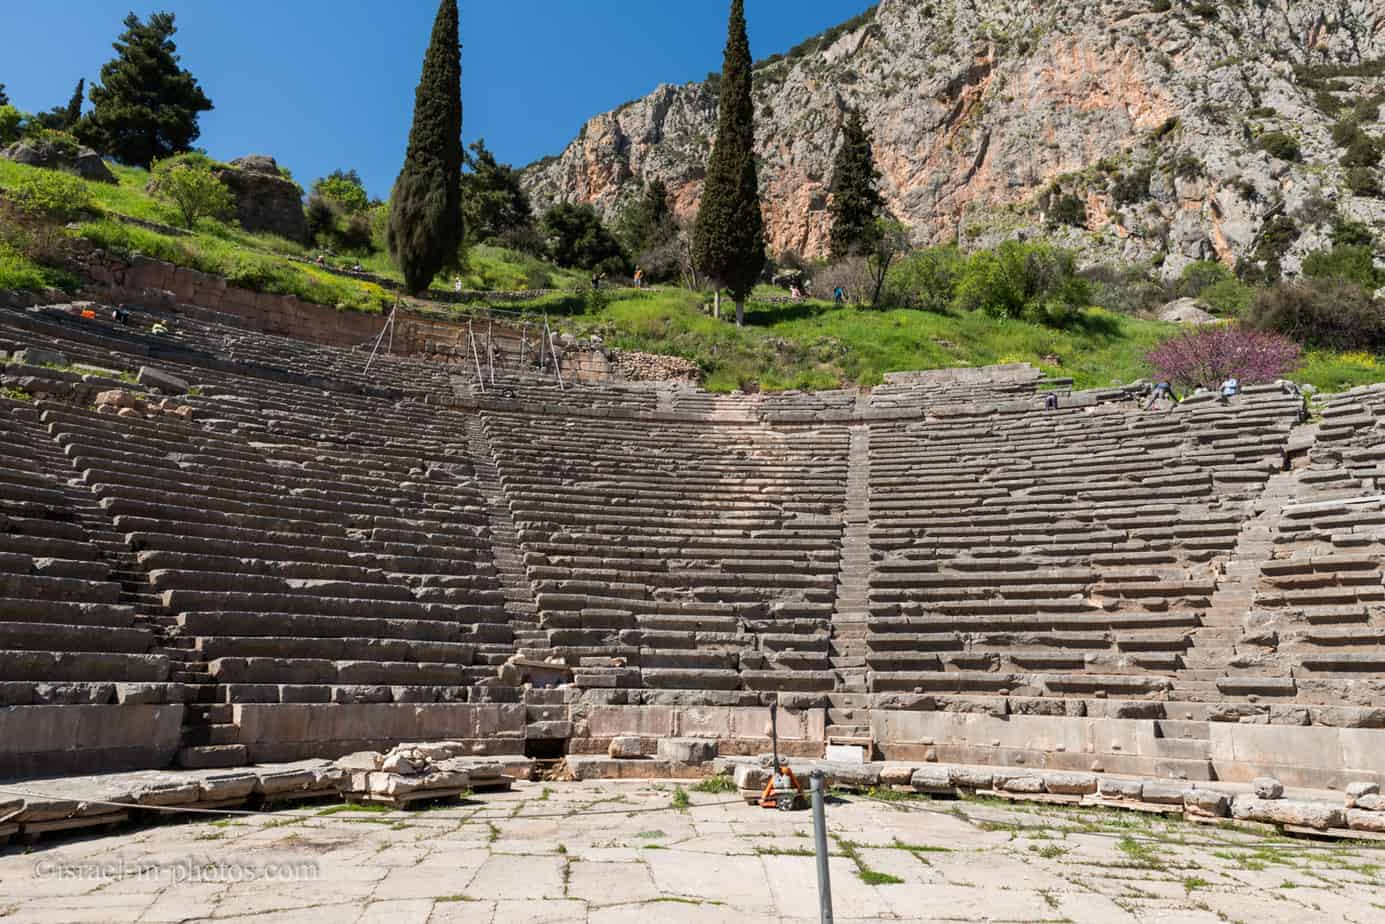 At Delphi archeological site in Greece, Europe